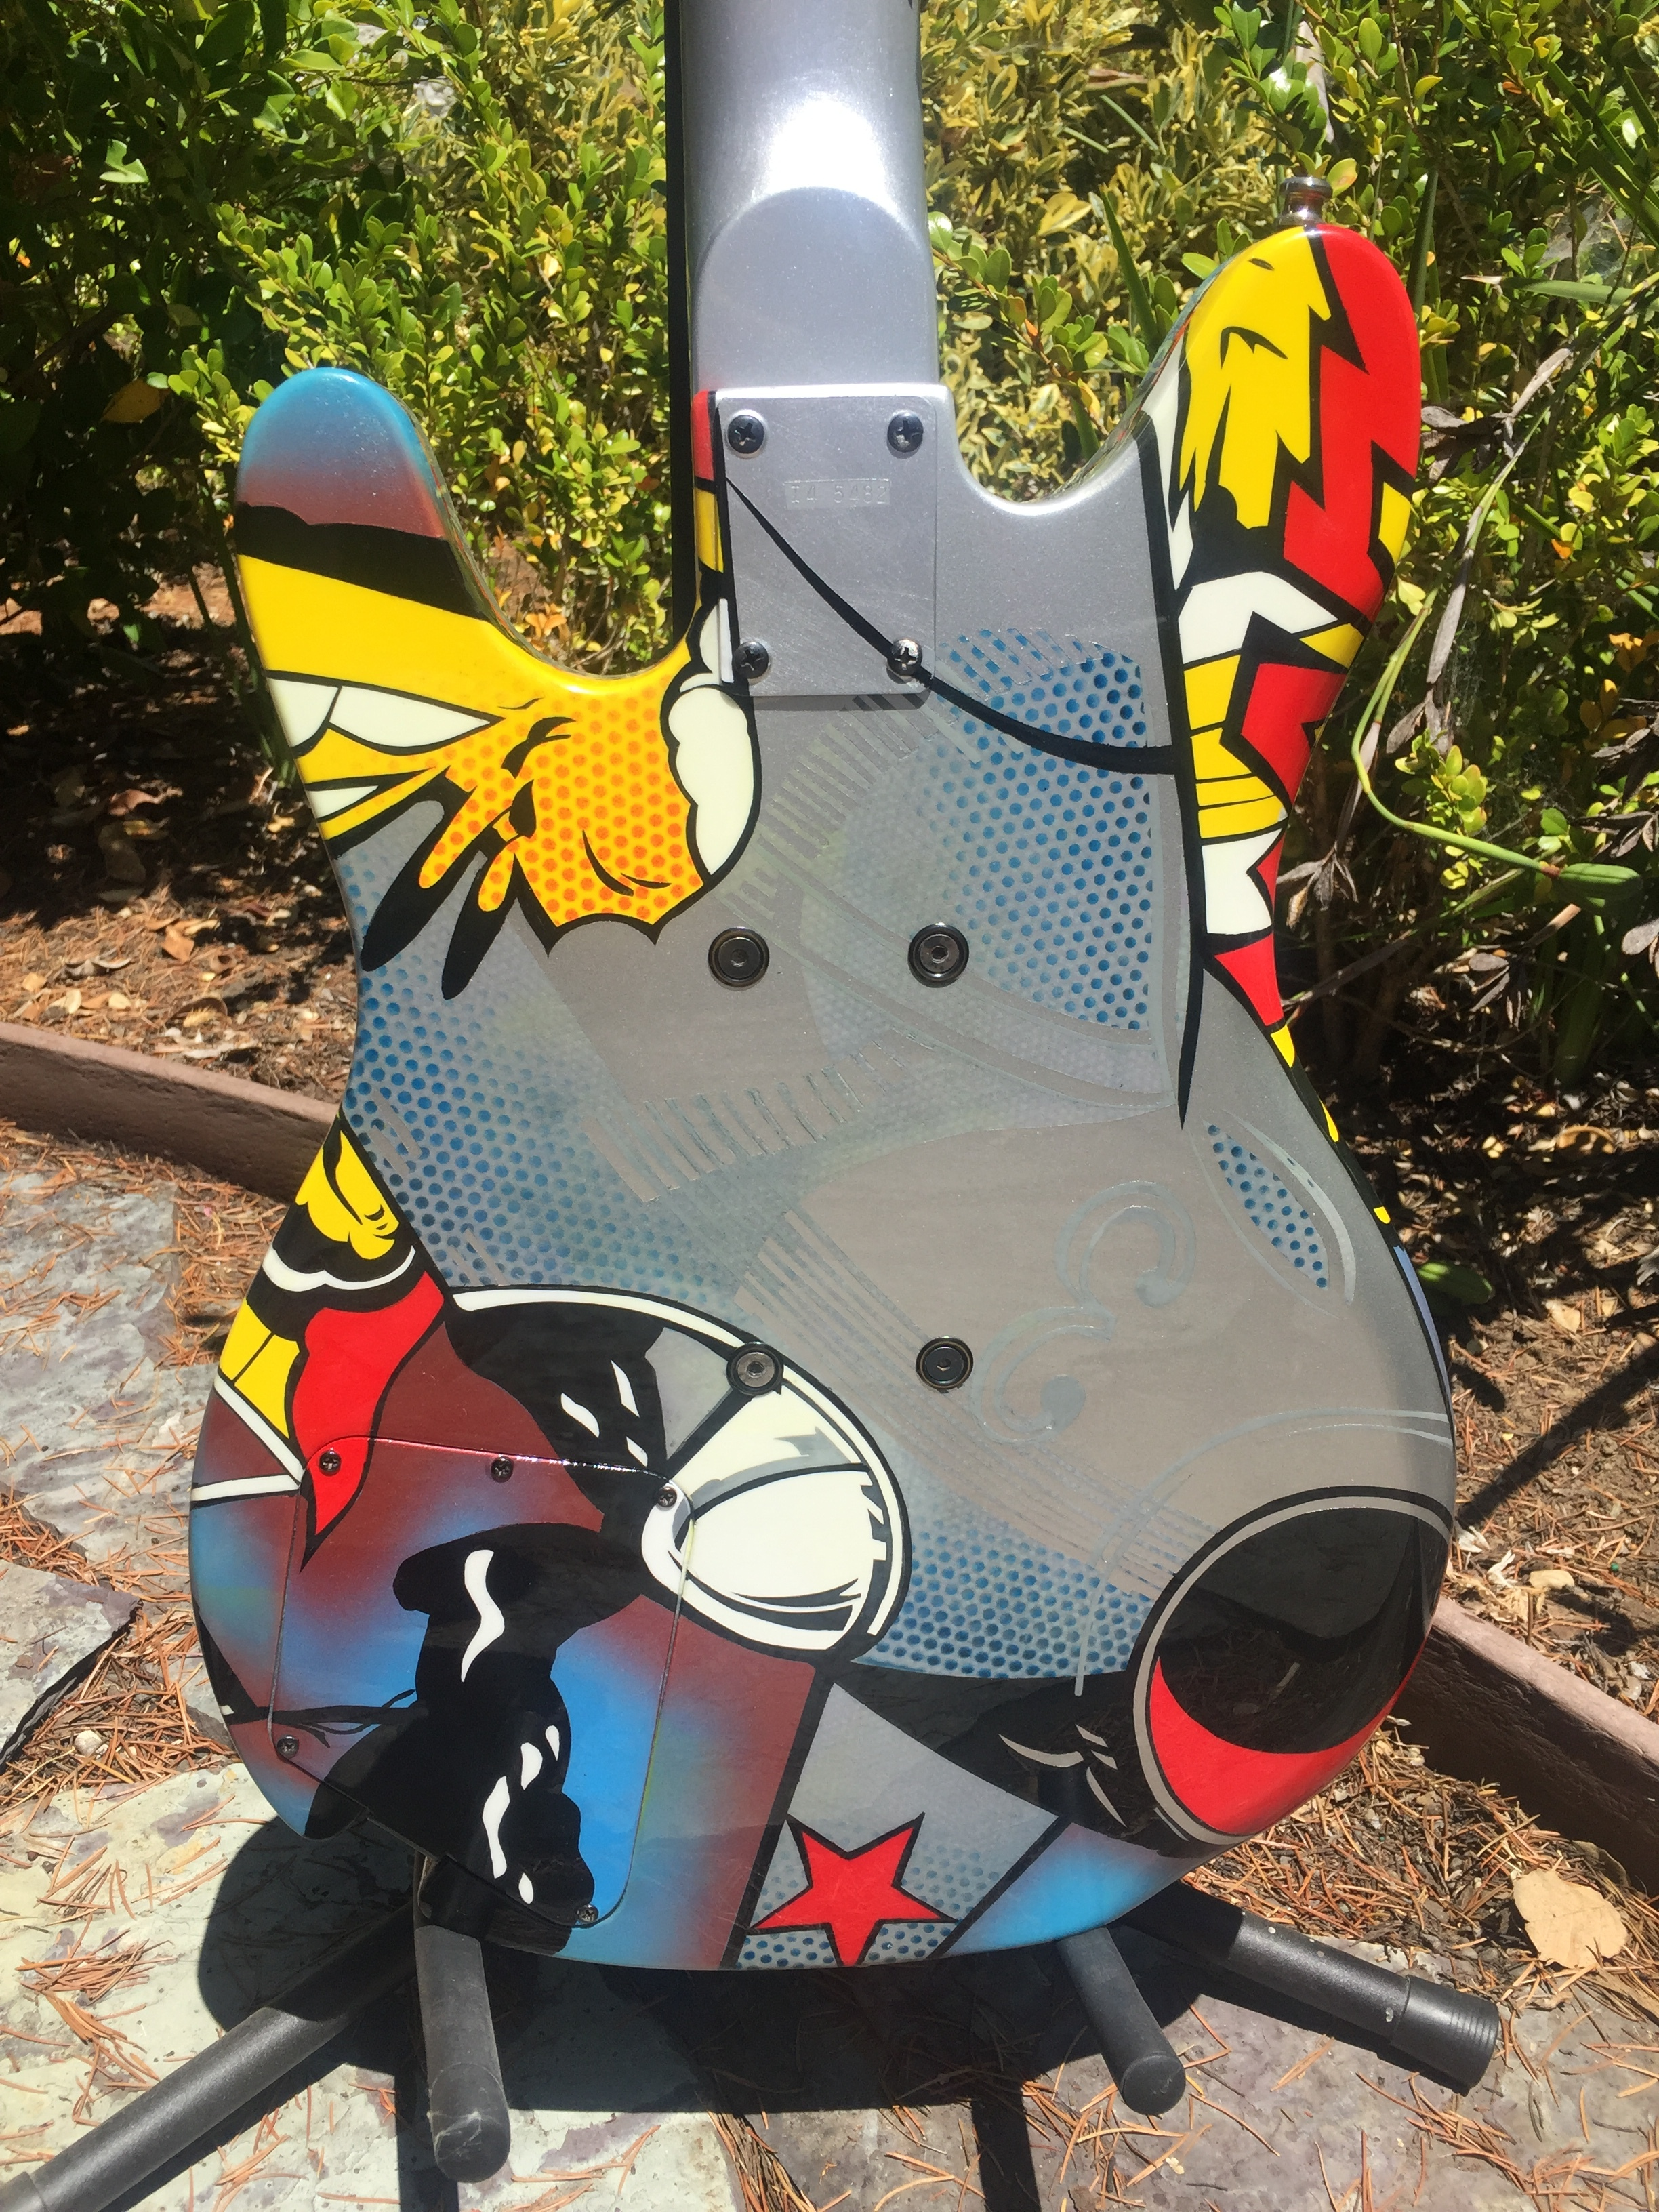 REAR OF GUITAR BODY CONTINUES EXPLODING THEME